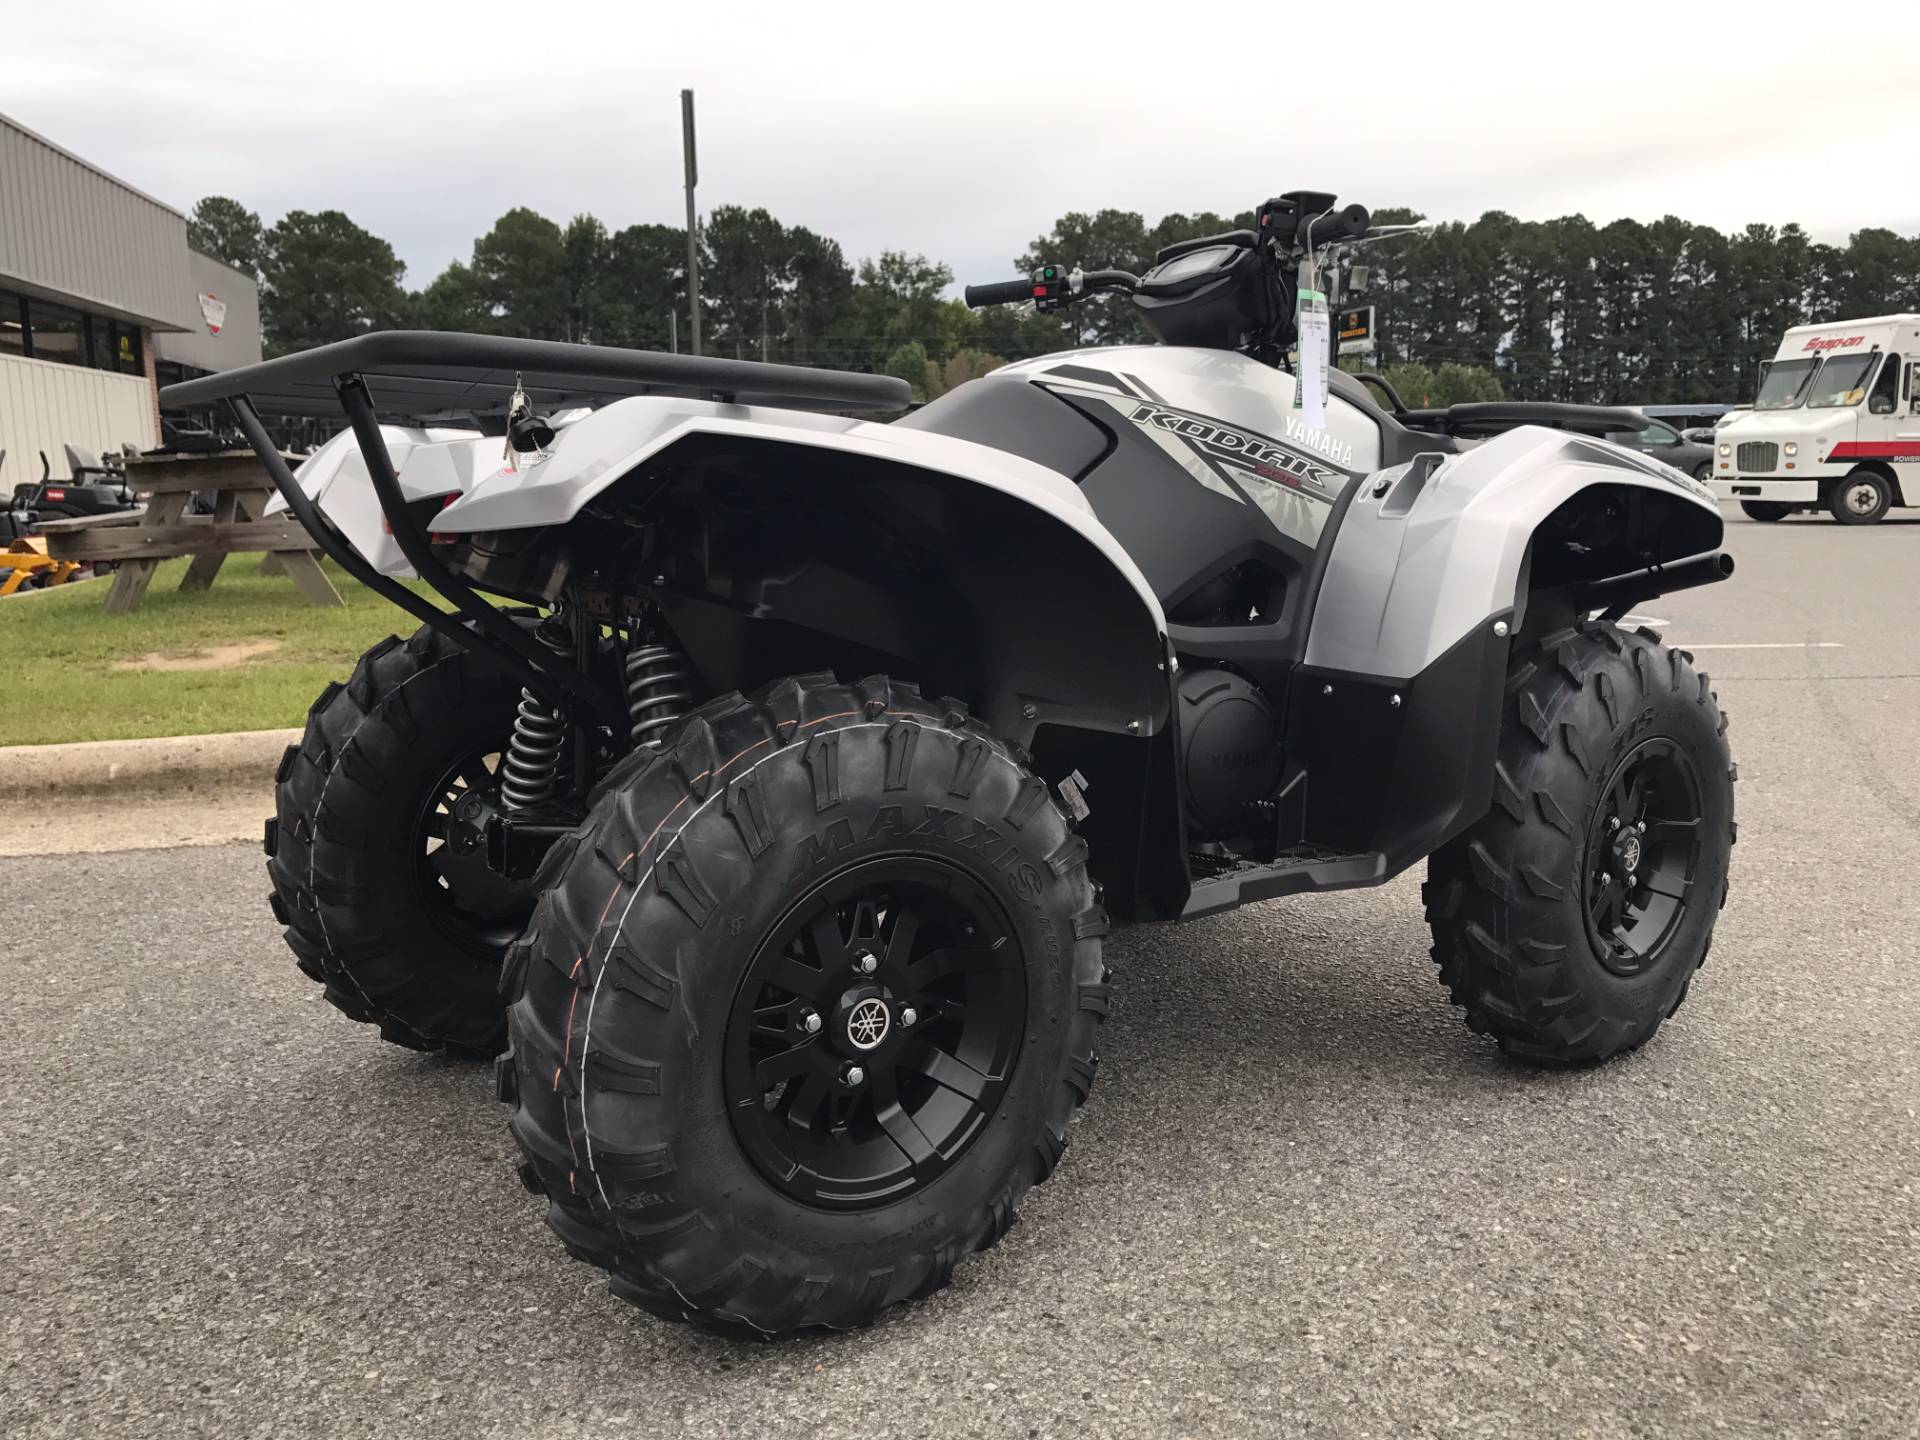 New 2018 yamaha kodiak 700 eps se atvs in greenville nc for Yamaha kodiak 700 review